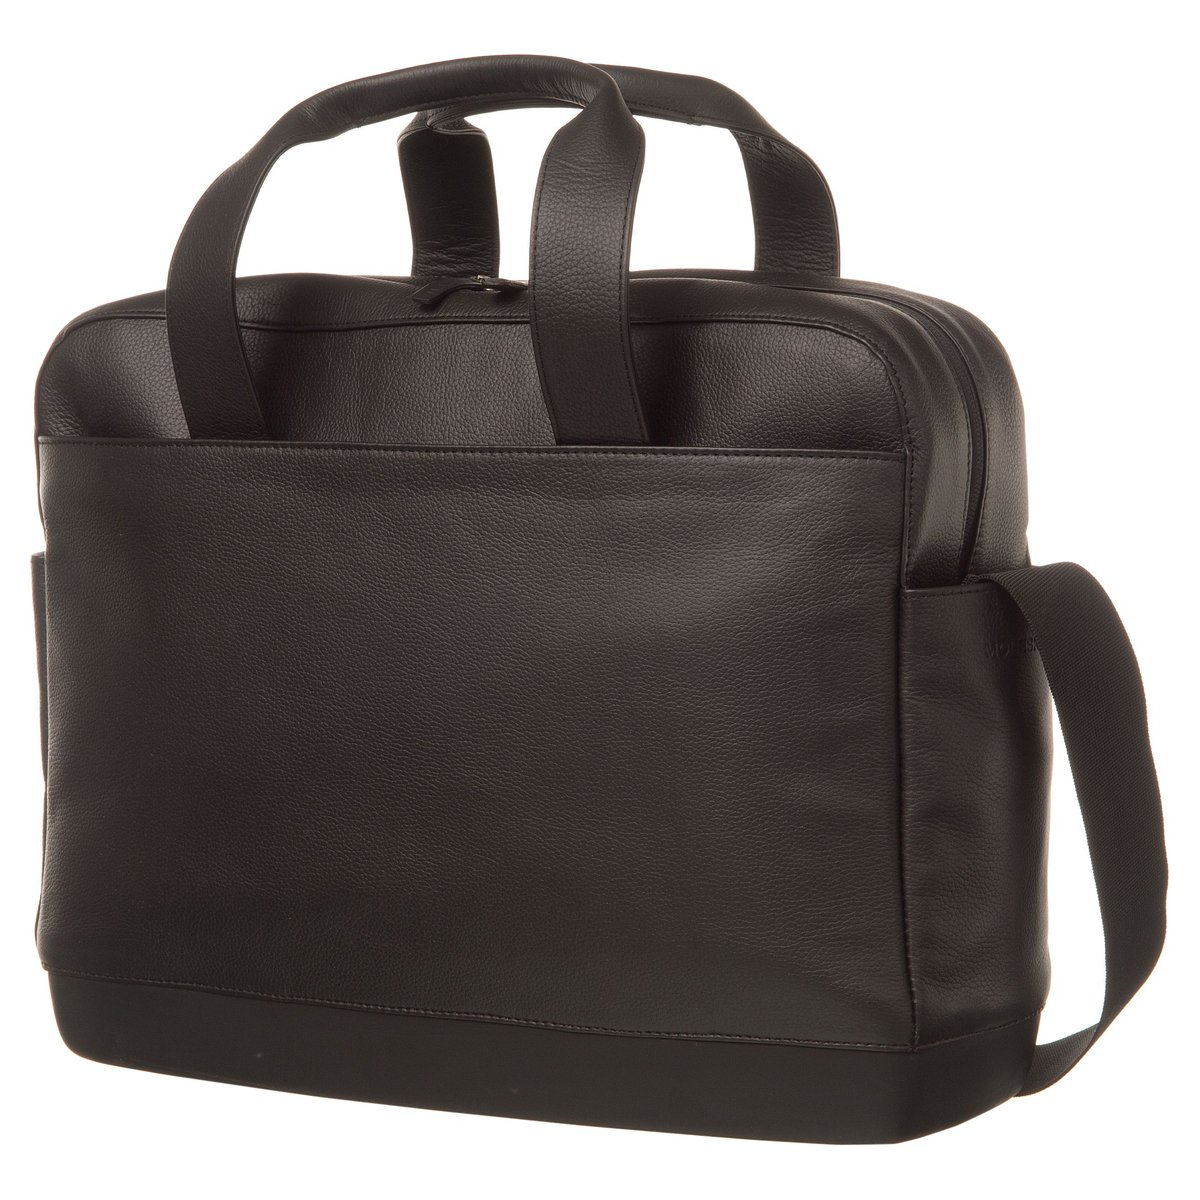 Moleskine Classic Leather Utility Bag, Black, For Work, School, Travel, and Everyday Use, Space for Tablet Laptop and Chargers, Notebook Planner or Organizer, Padded Adjustable Straps, Secure Zipper